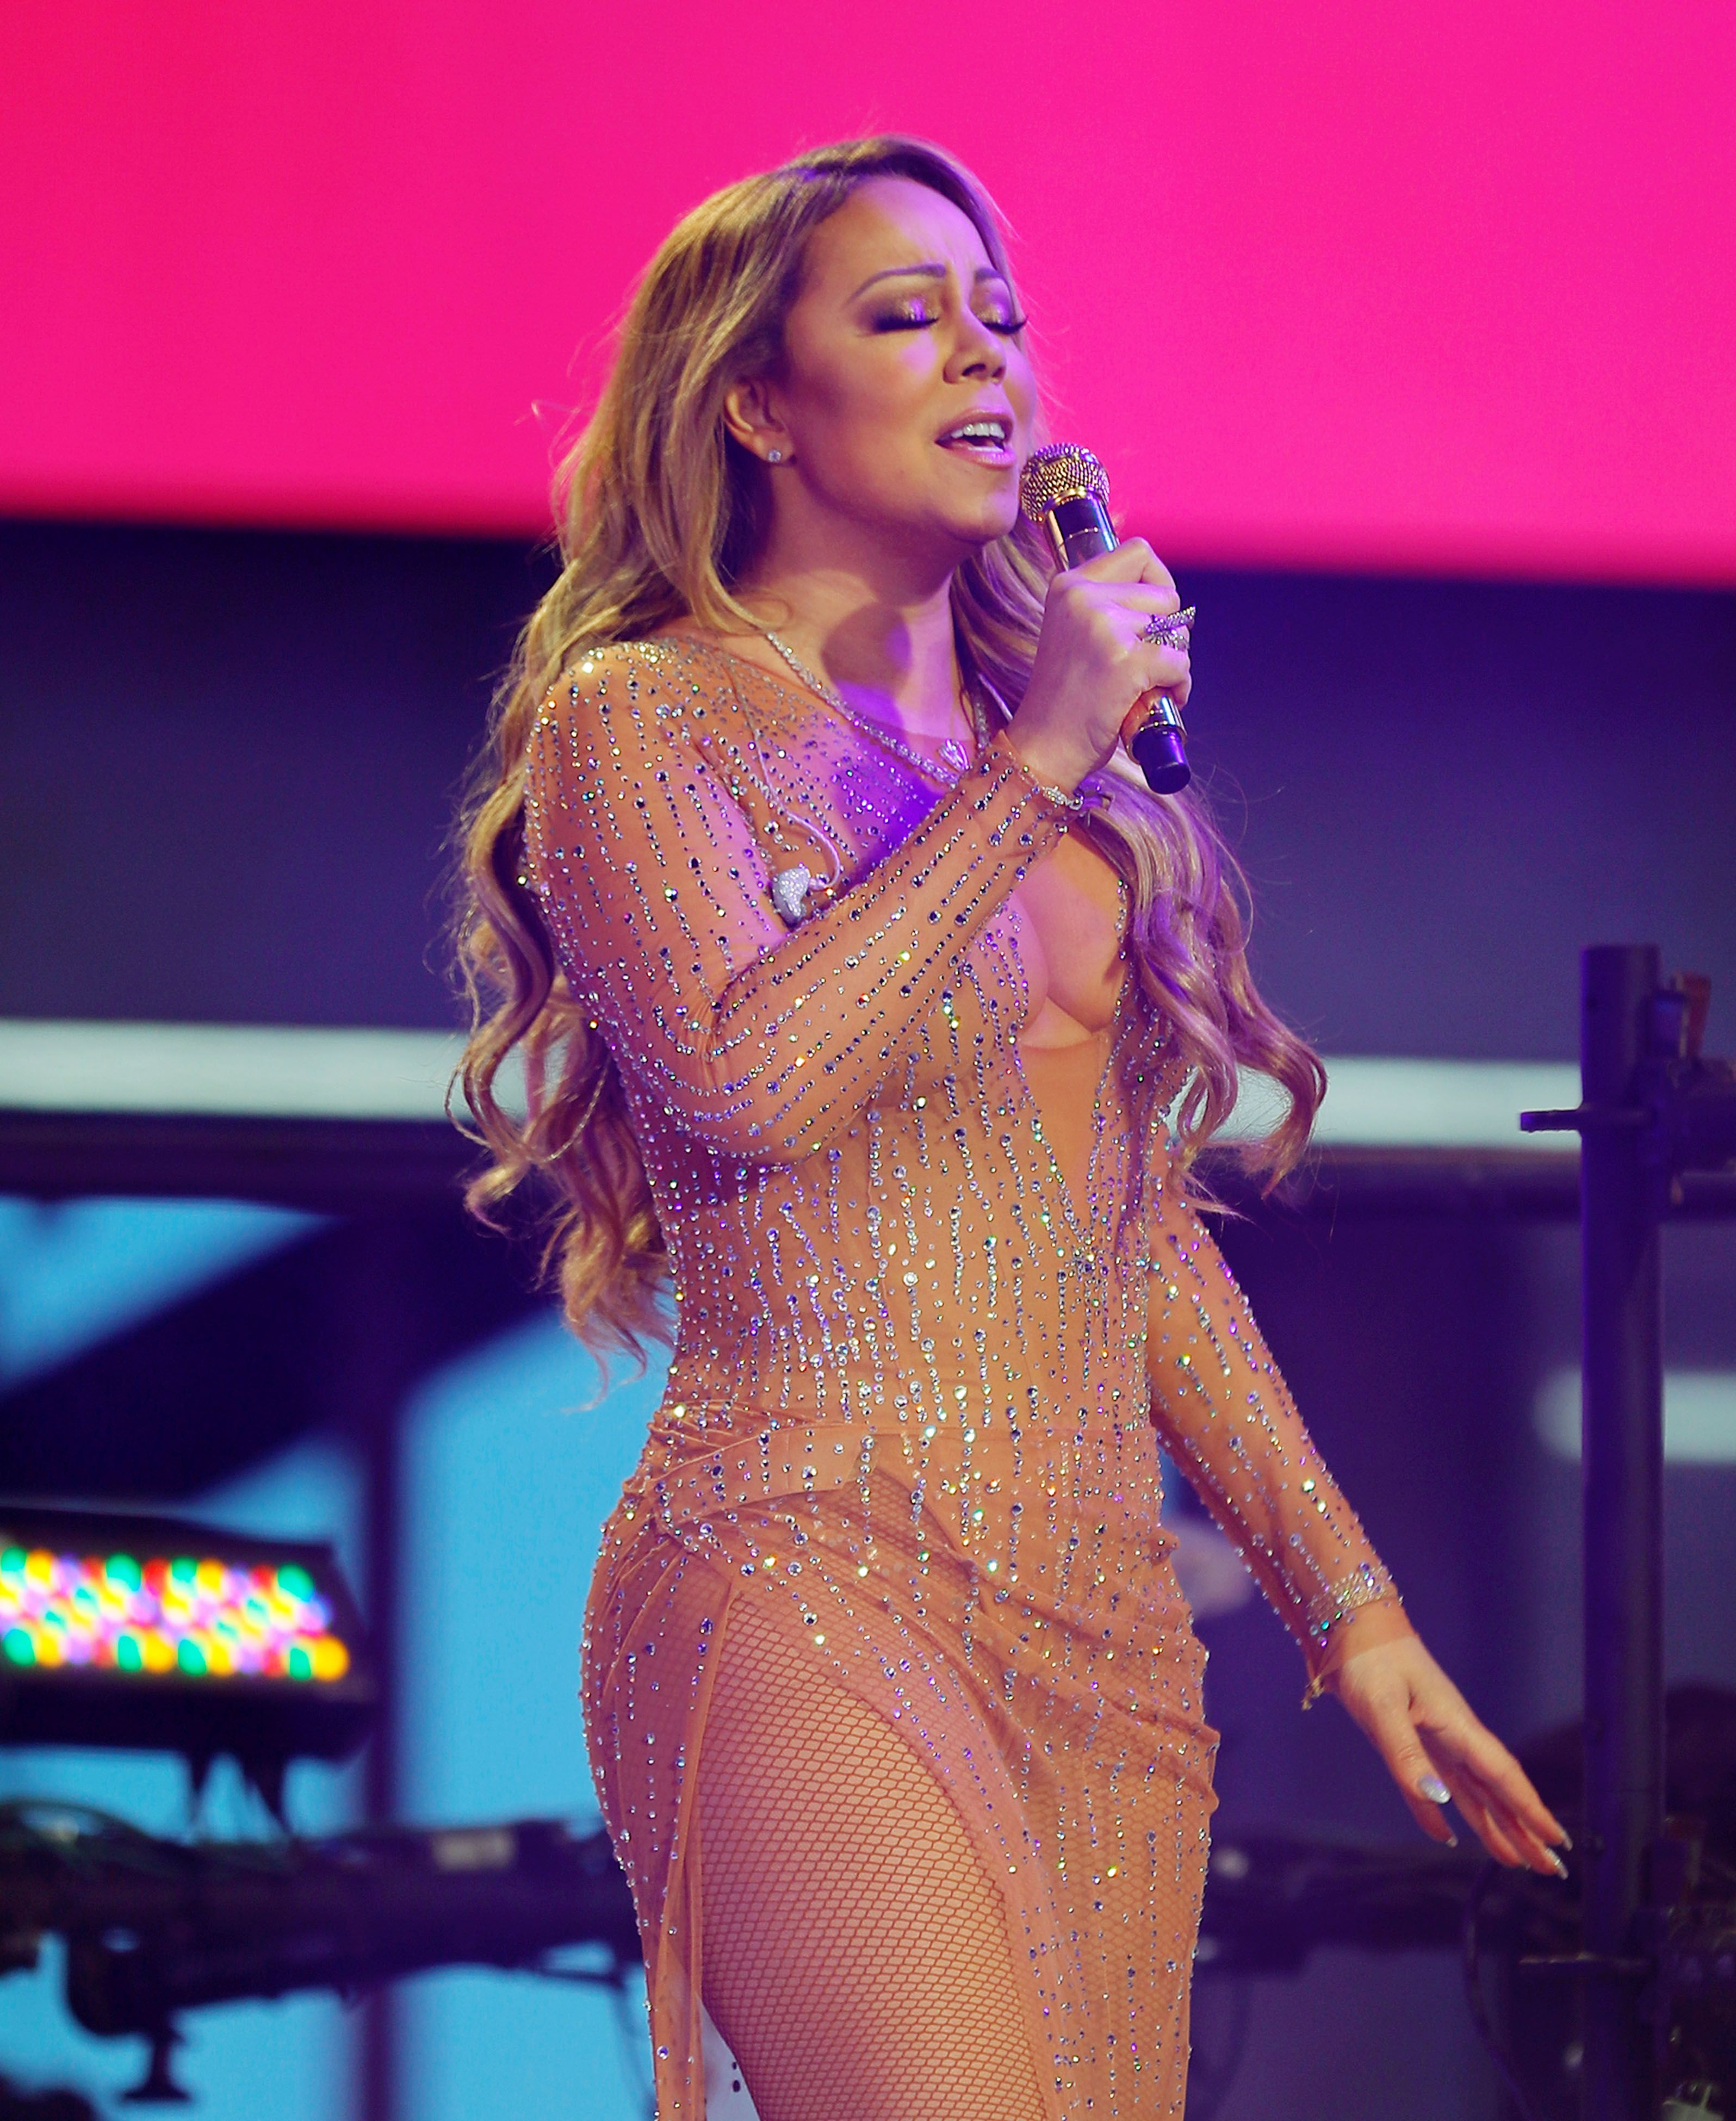 Mariah Carey Sexy Photos | The Fappening. 2014-2019 ...